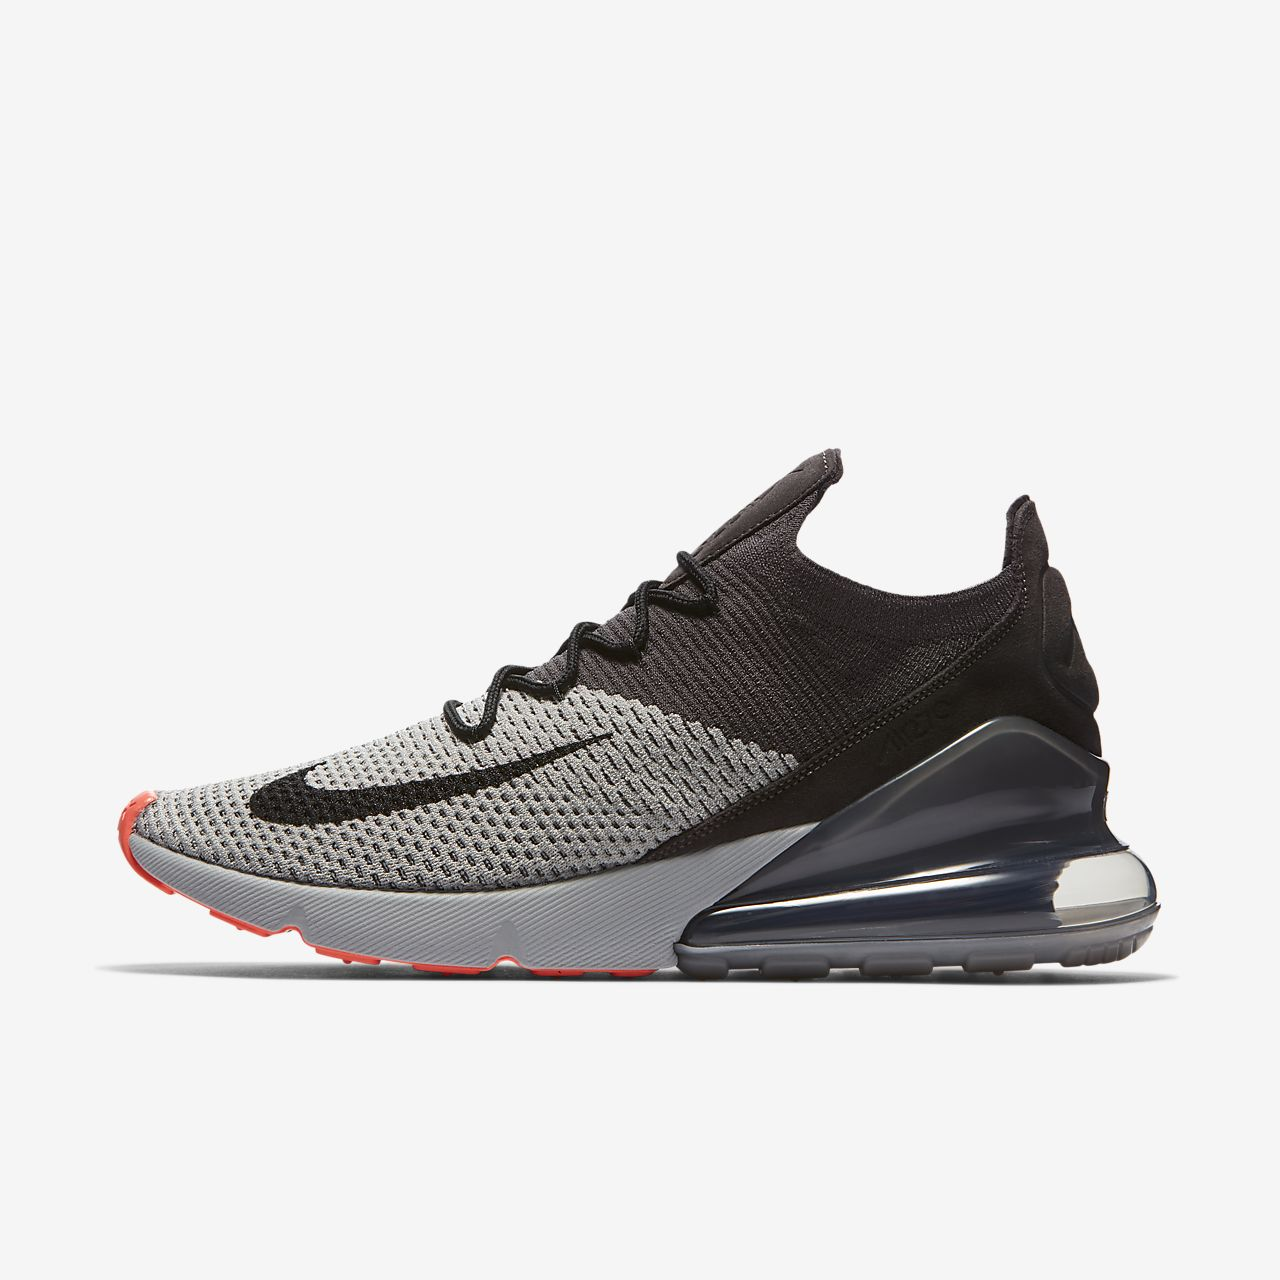 c37fe5367f8c Nike Air Max 270 Flyknit Men s Shoe. Nike.com NZ